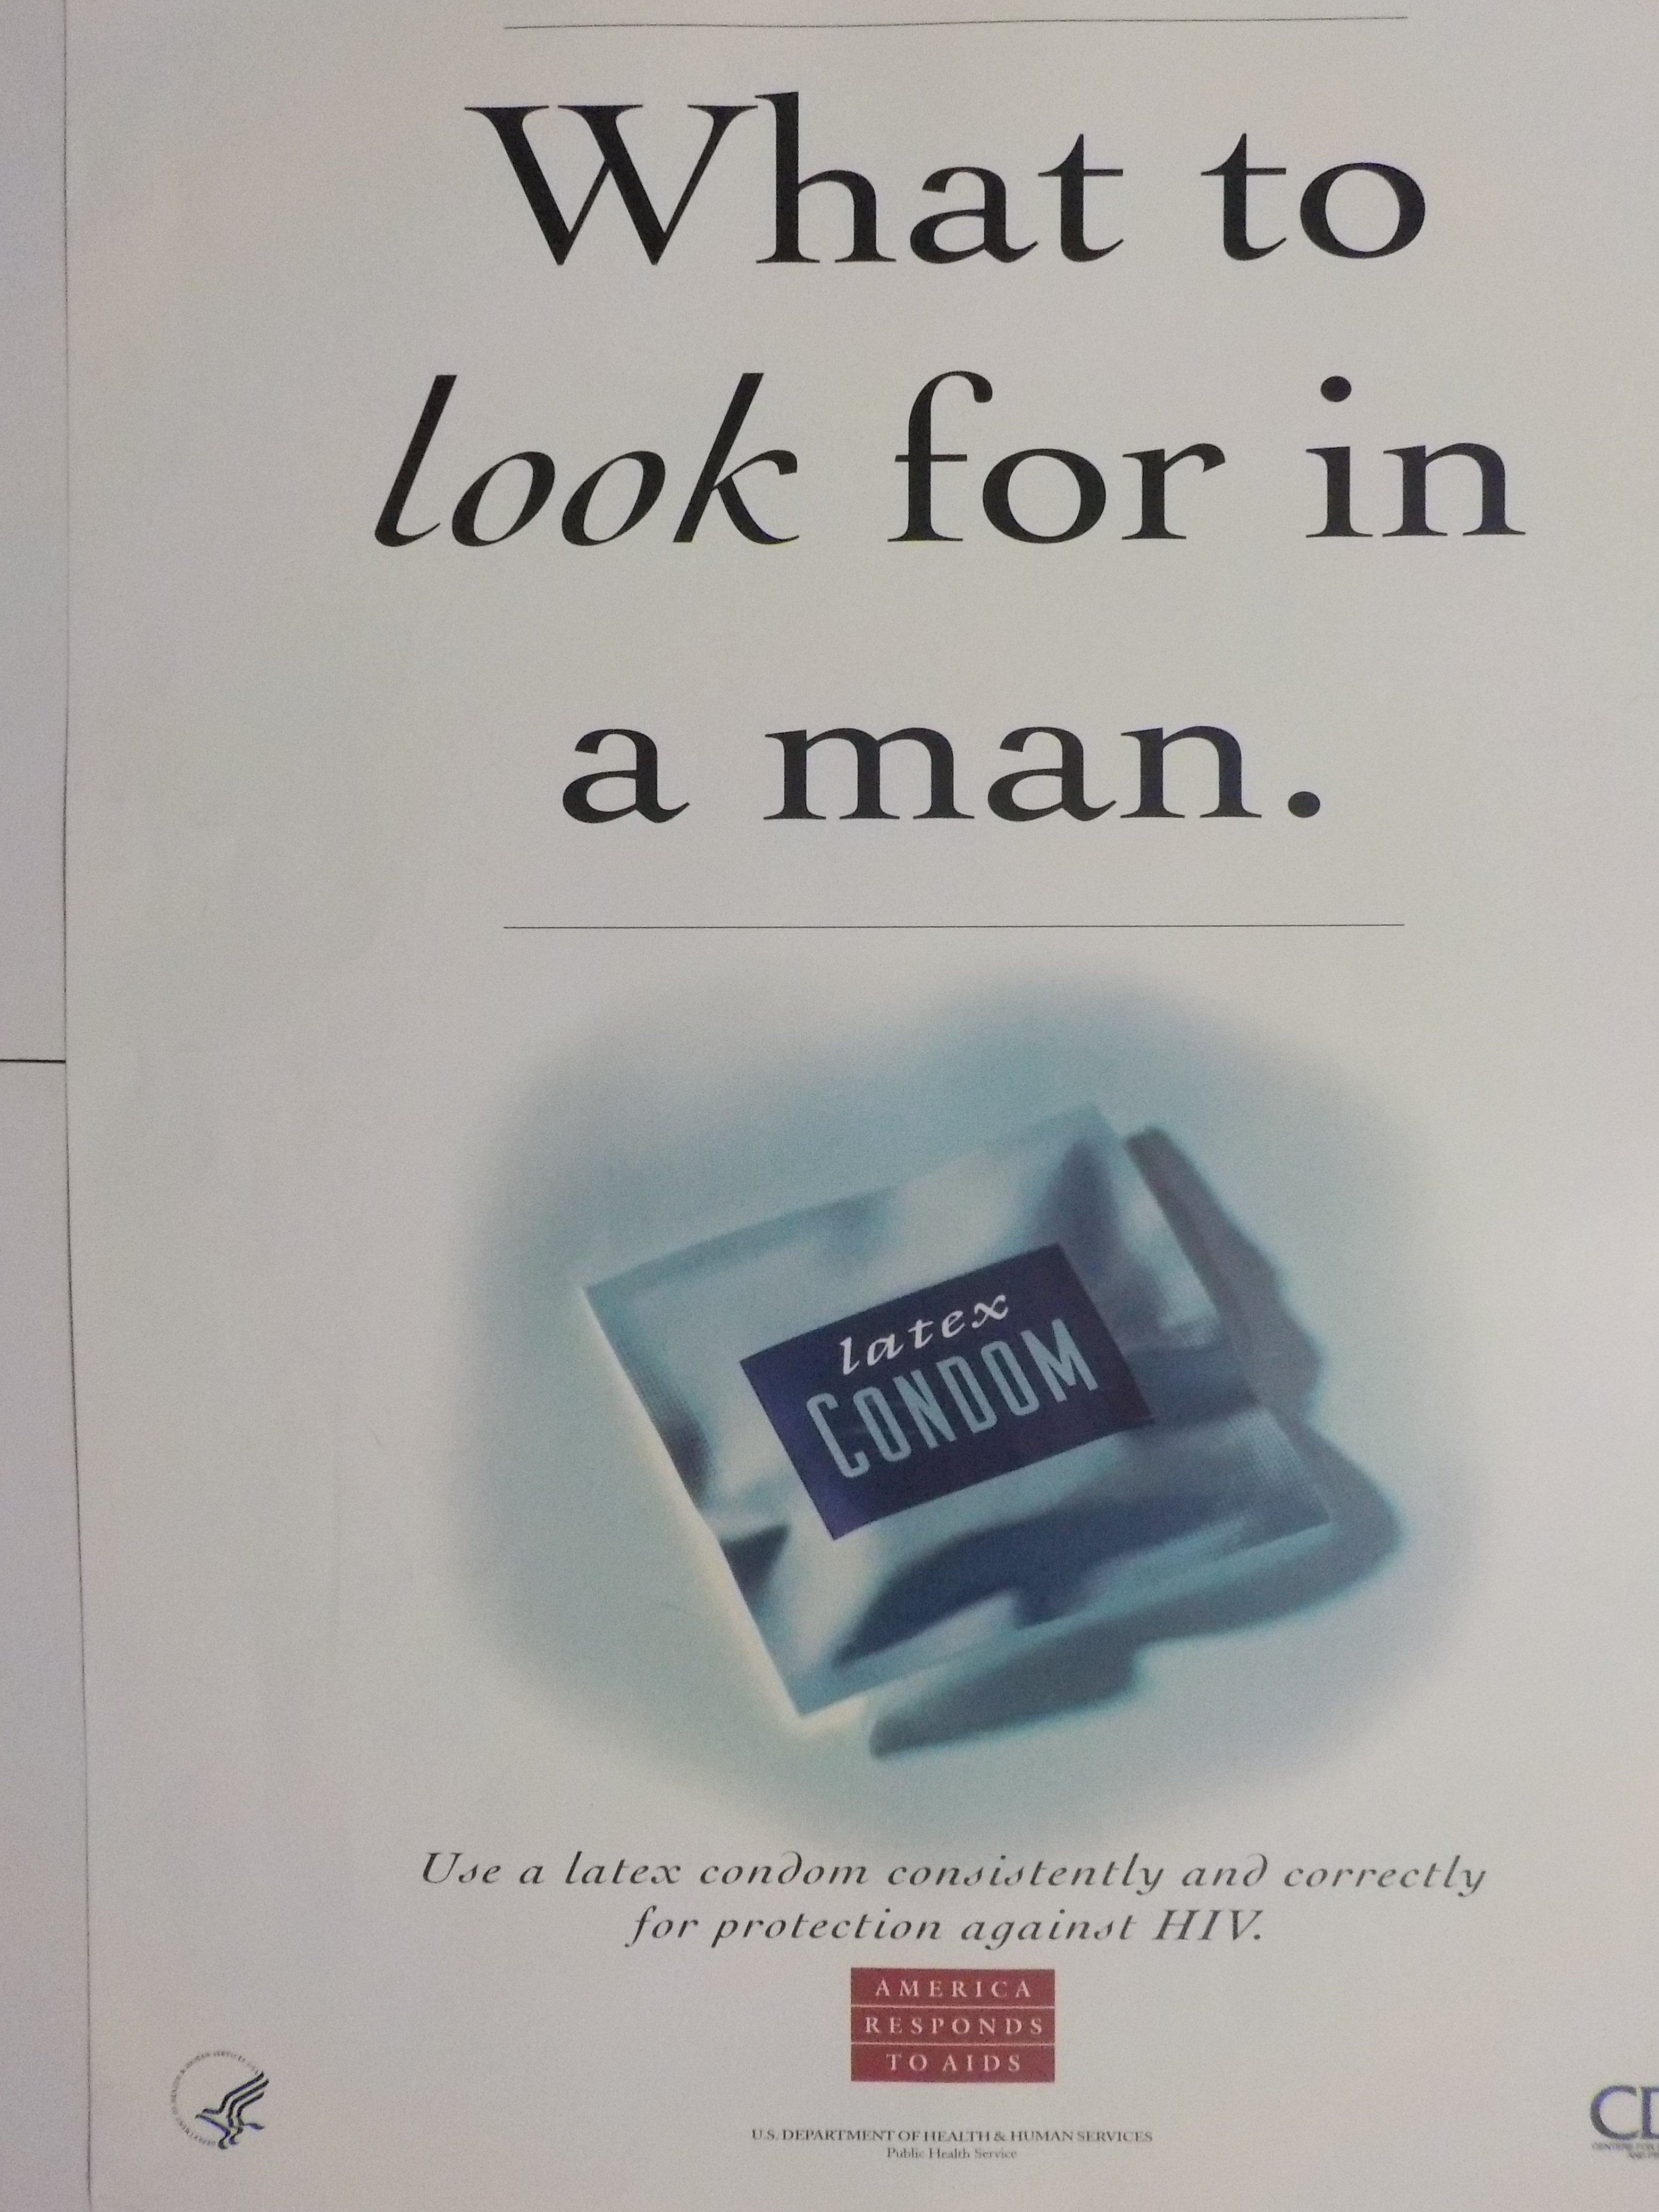 What to look for in a man